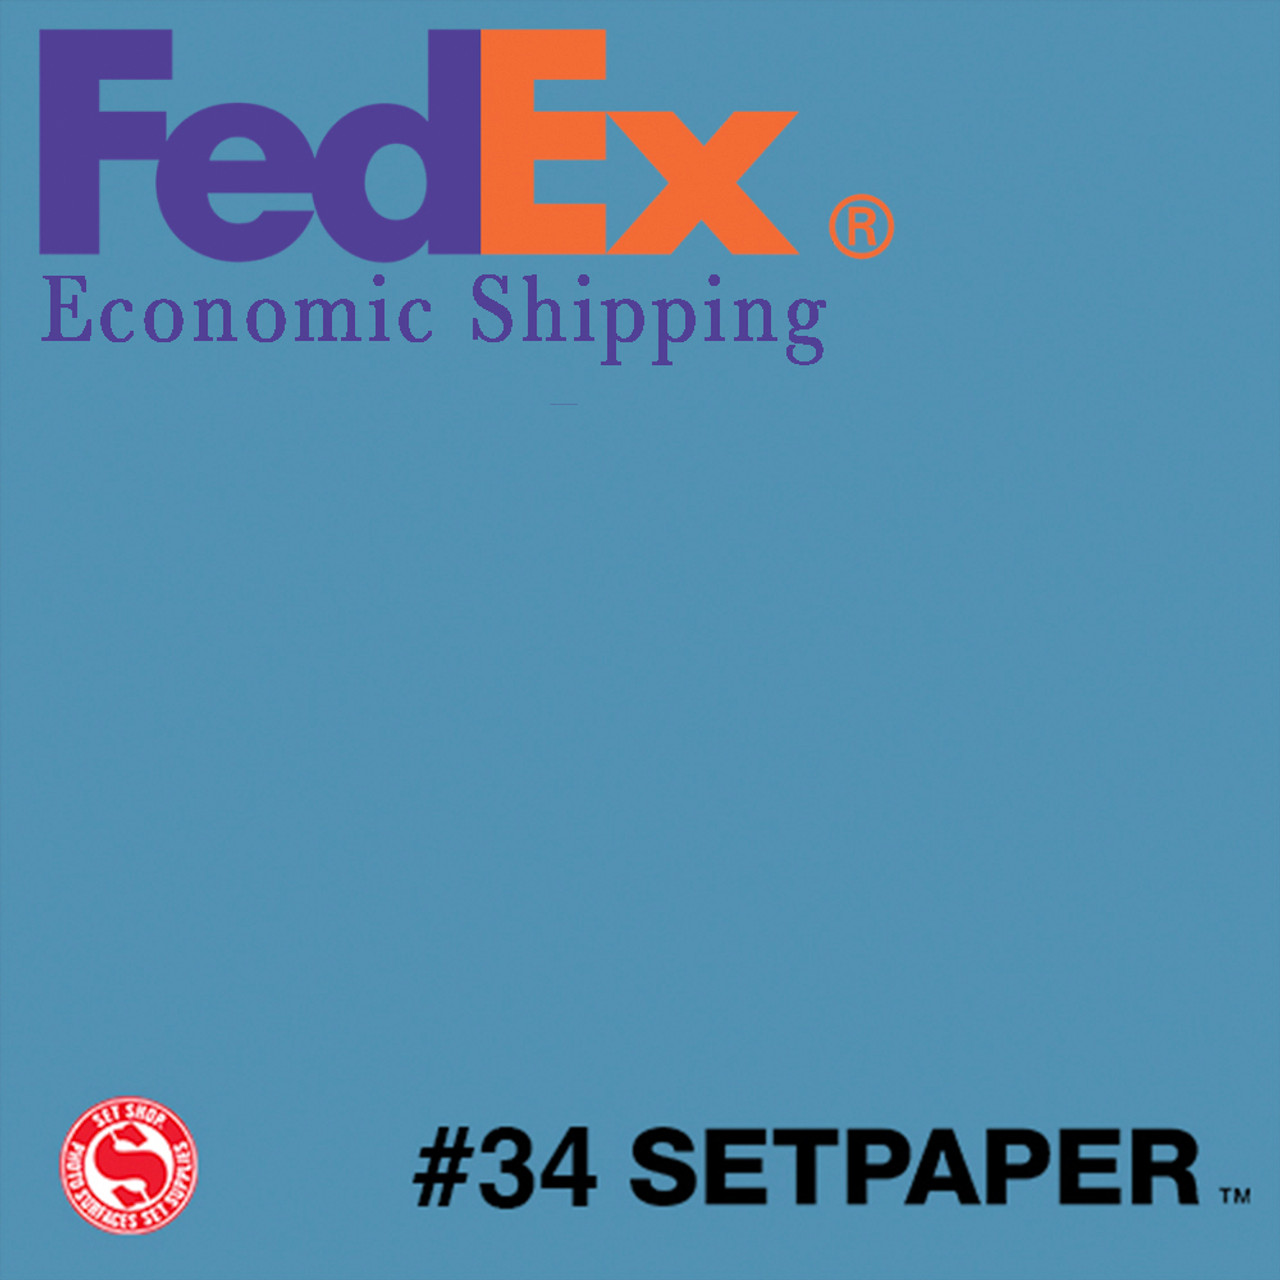 (ECONOMIC SHIPPING) SETPAPER - GULF BLUE 48″ x 36' (1.3 x 11m)